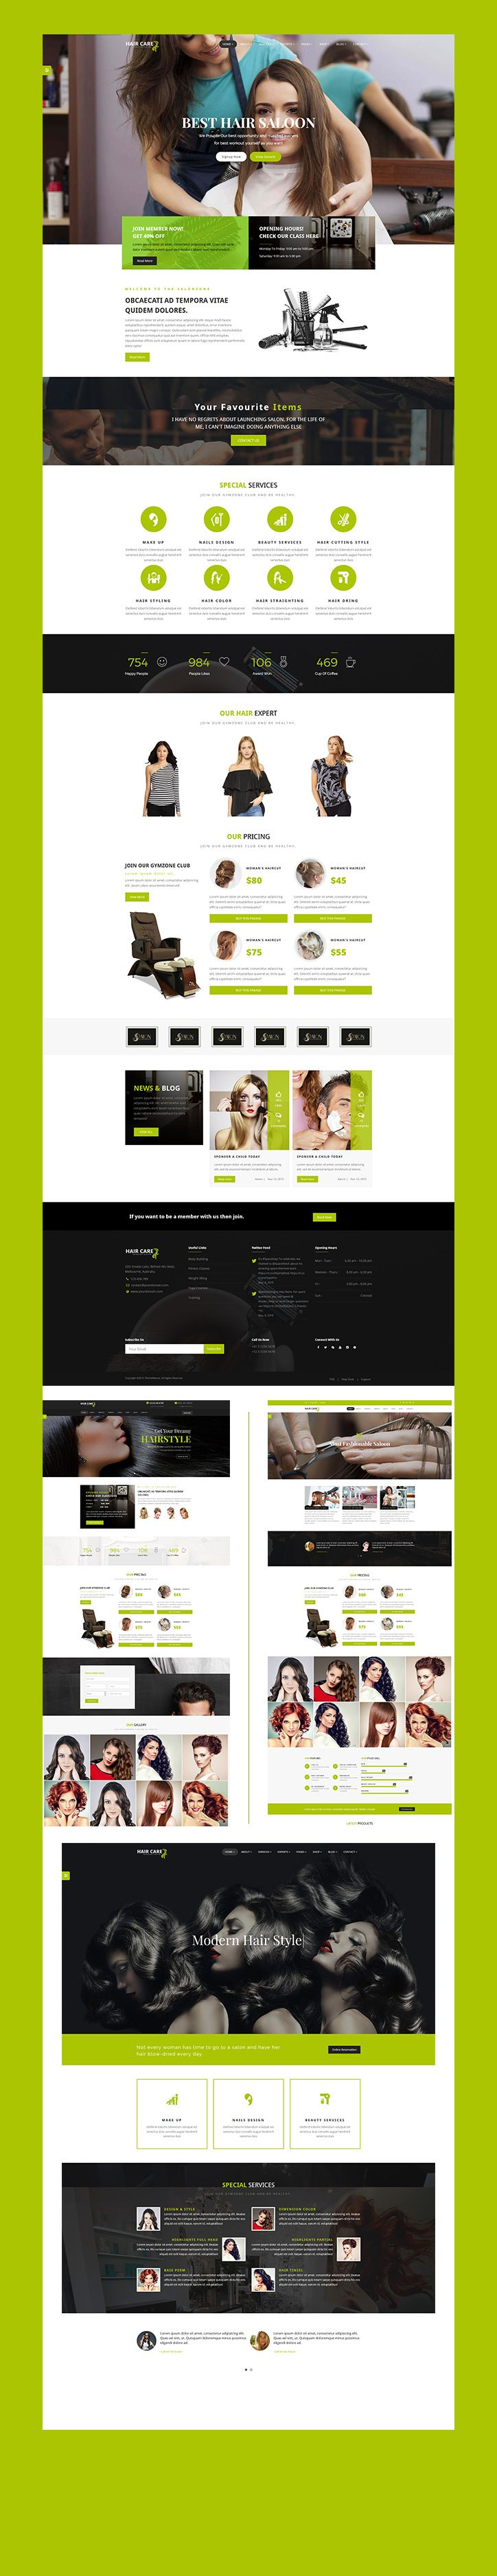 HairCare is a library for Beauty Salon & Barber with predefined web elements which helps you to build your own site.  These theme is suitable for spa, beauty, care, girly, hair, health, beauty parlour, massage, skincare, saloon, make up, physiotherapy, salon, wellness, yoga website.  HairCare theme has a fully responsive layout. It fits perfectly on various displays and resolutions from regular desktop screens to tablets, iPads, iPhones and small mobile devices.